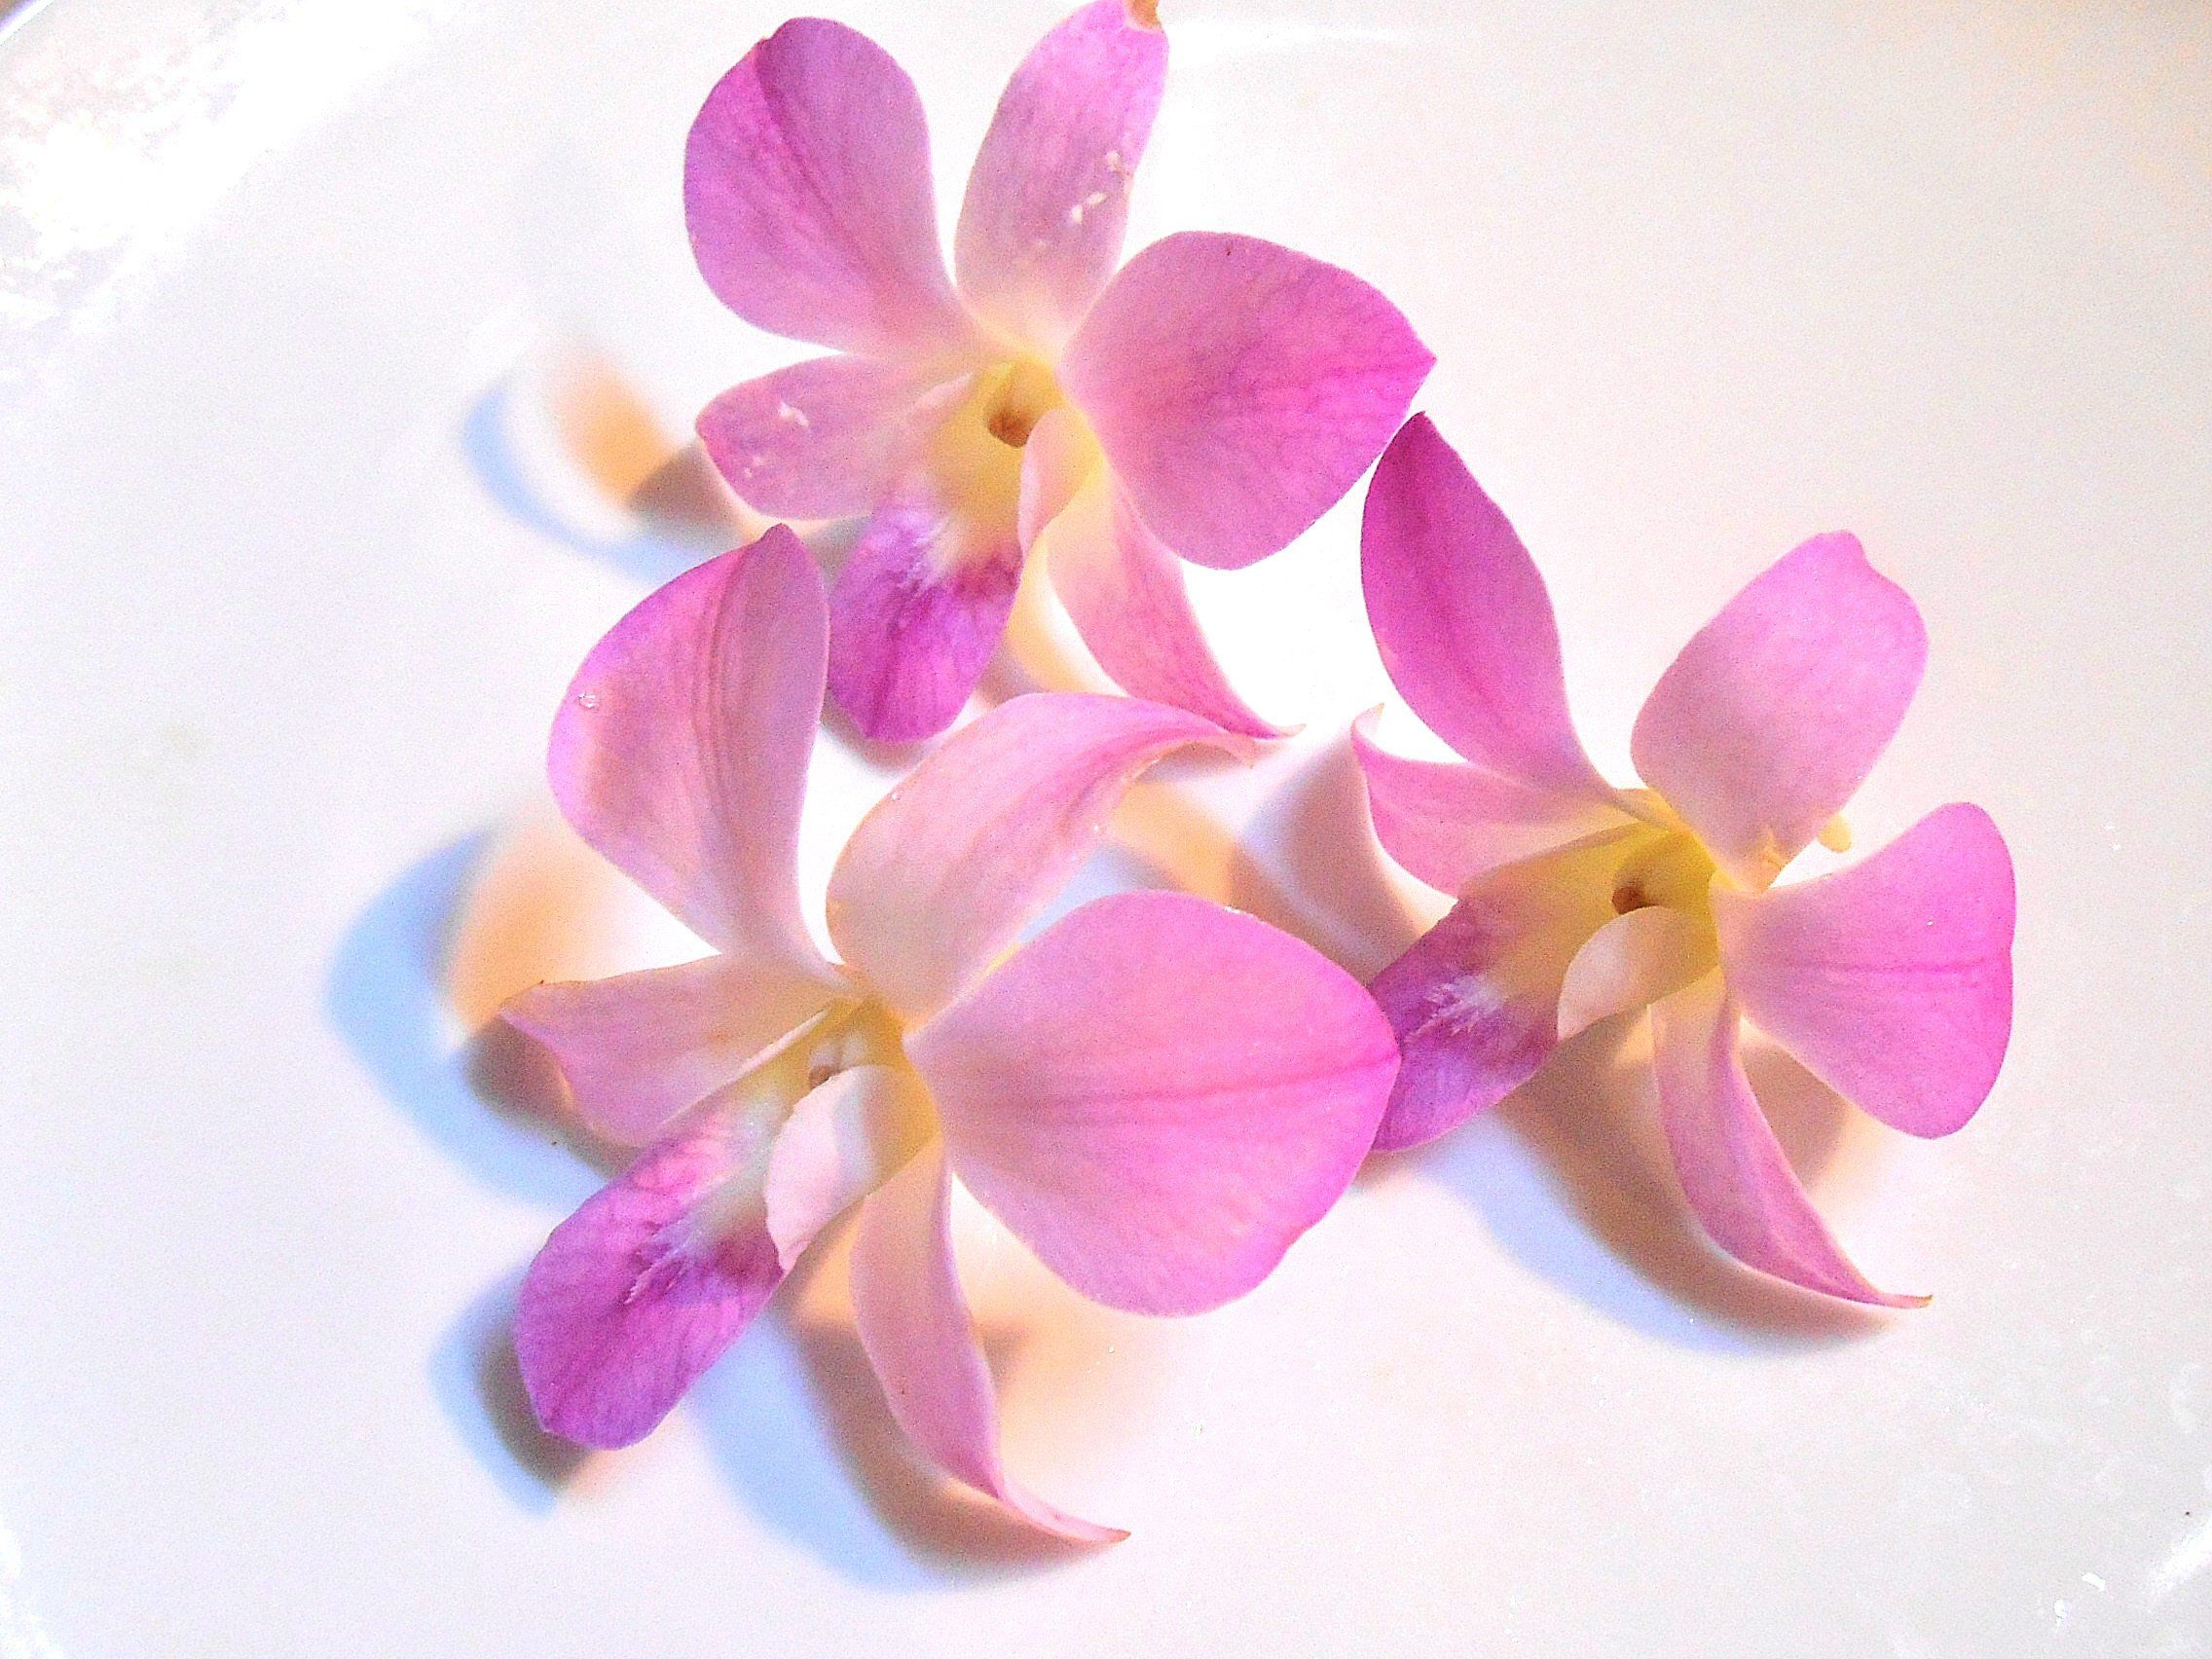 Organic Edible Orchids Gourmet Real Orchids Small Lavender Pink And White Shades Orchids Over Night Shipping Wedding Cakes Bulk 25 In 2020 Edible Flowers Orchids Fresh Flowers